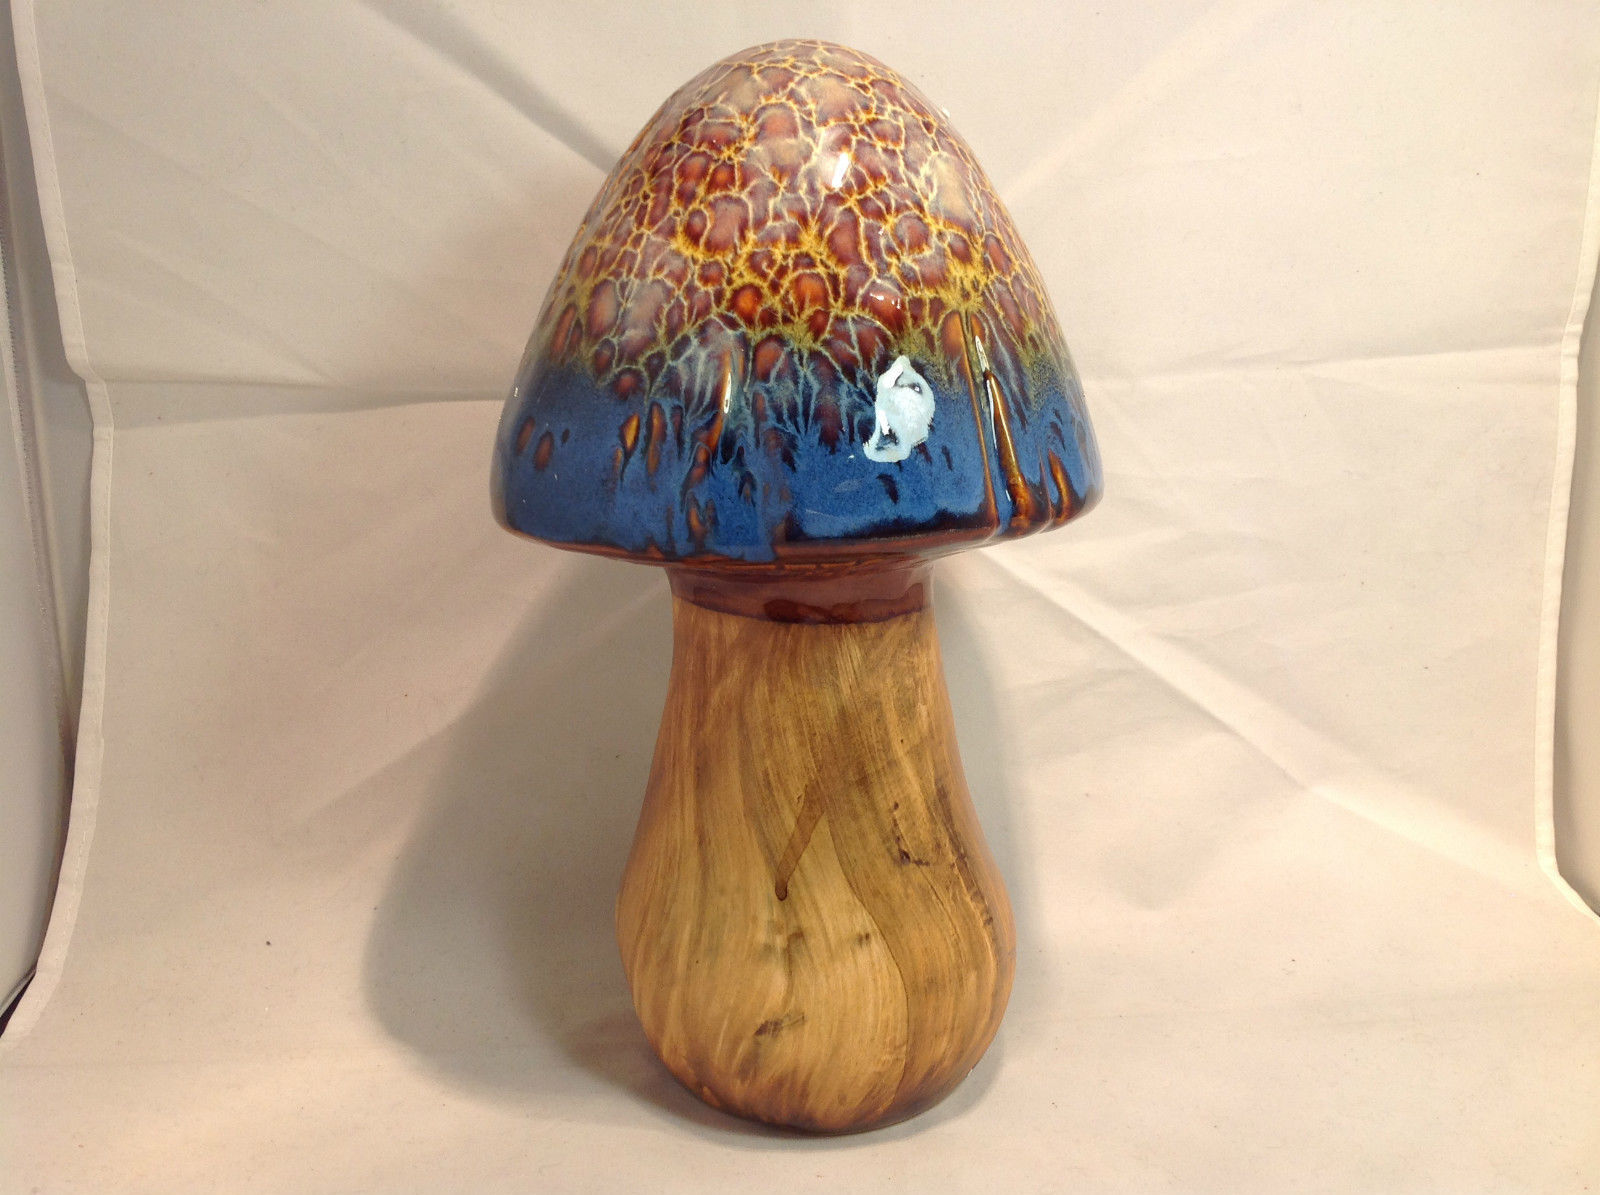 Enesco Tall Ceramic Mushroom Figurine Blue Cap